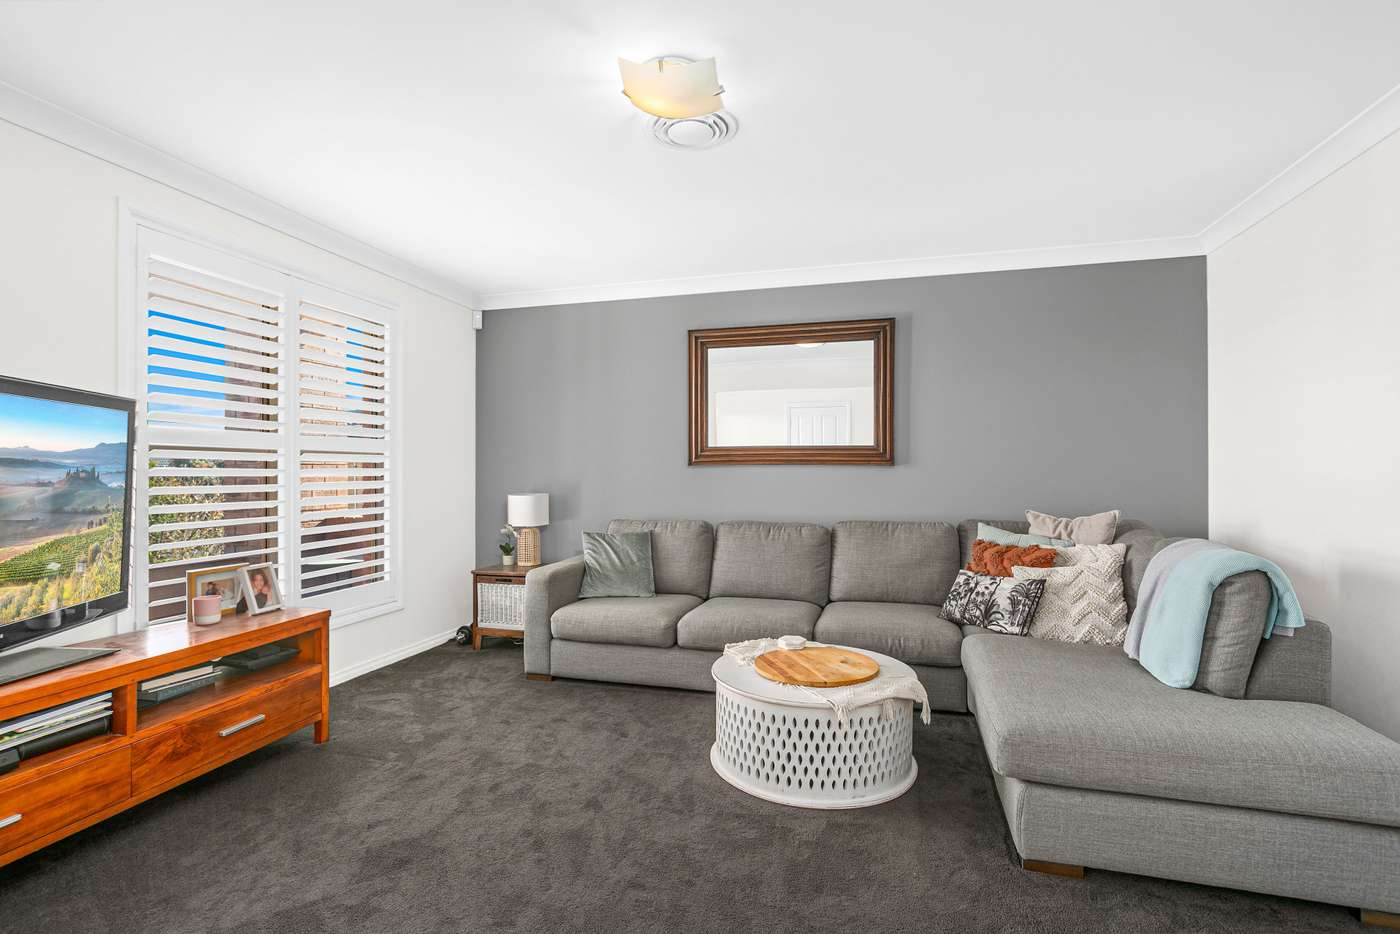 Fifth view of Homely house listing, 6 Gore Avenue, Shell Cove NSW 2529